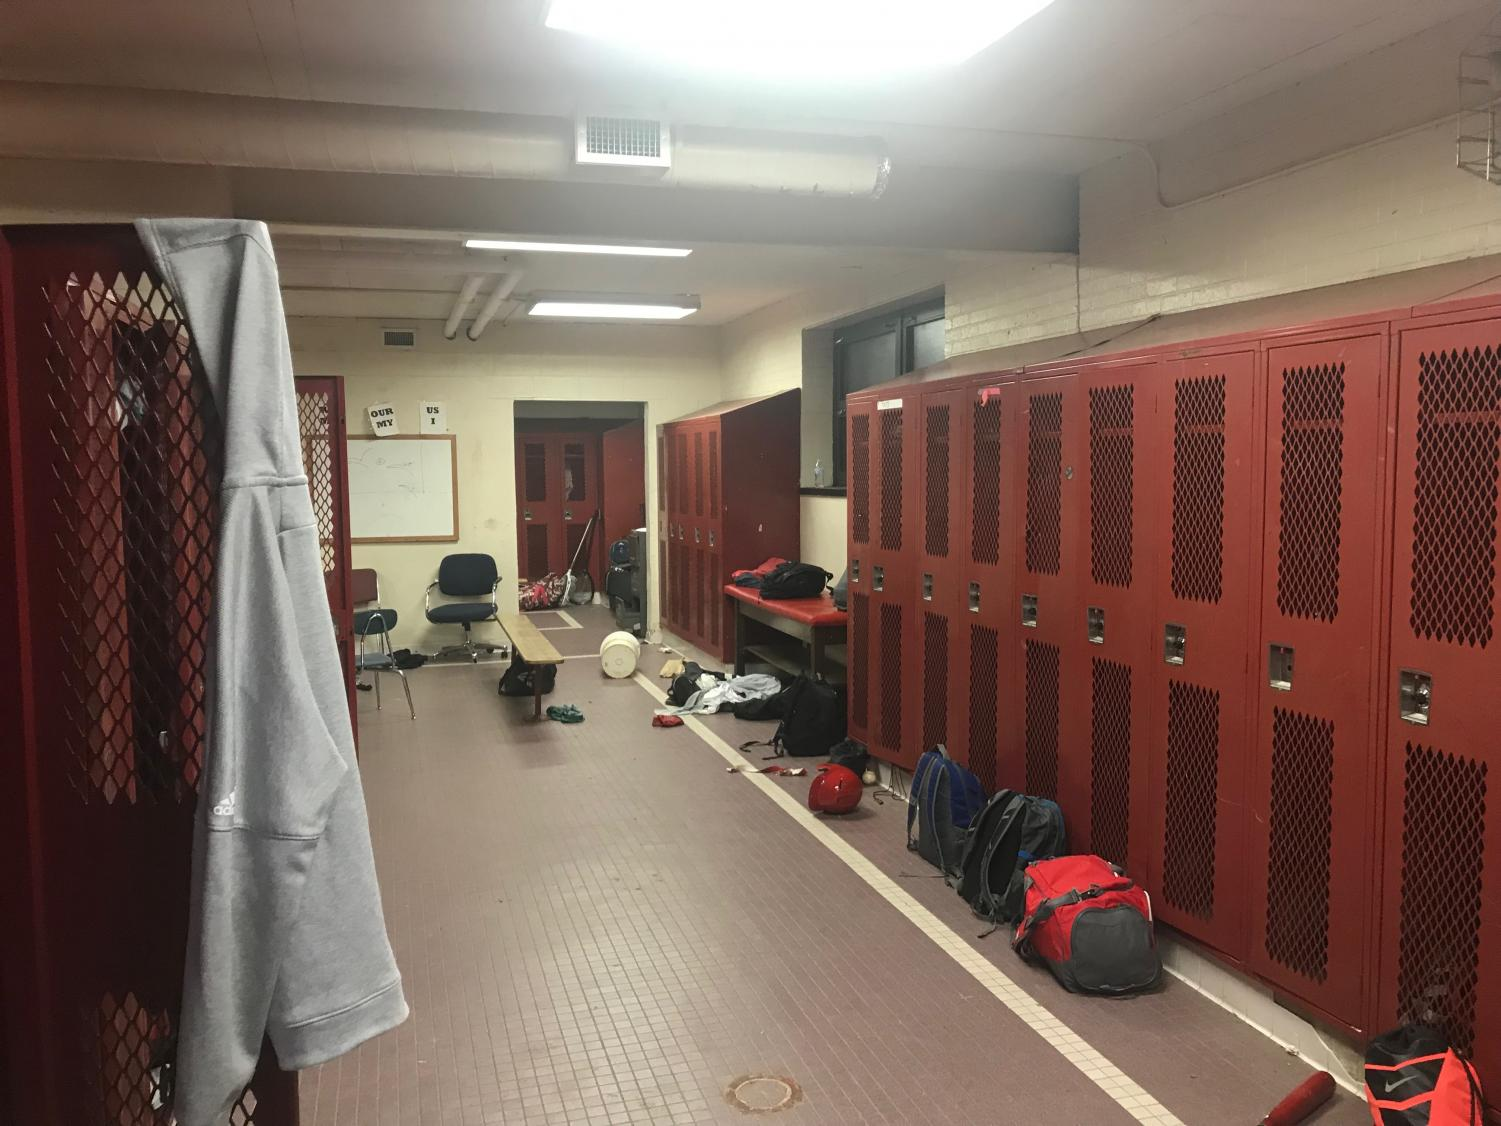 A section of the boys' team locker room. Most lockers do not work throughout the room.